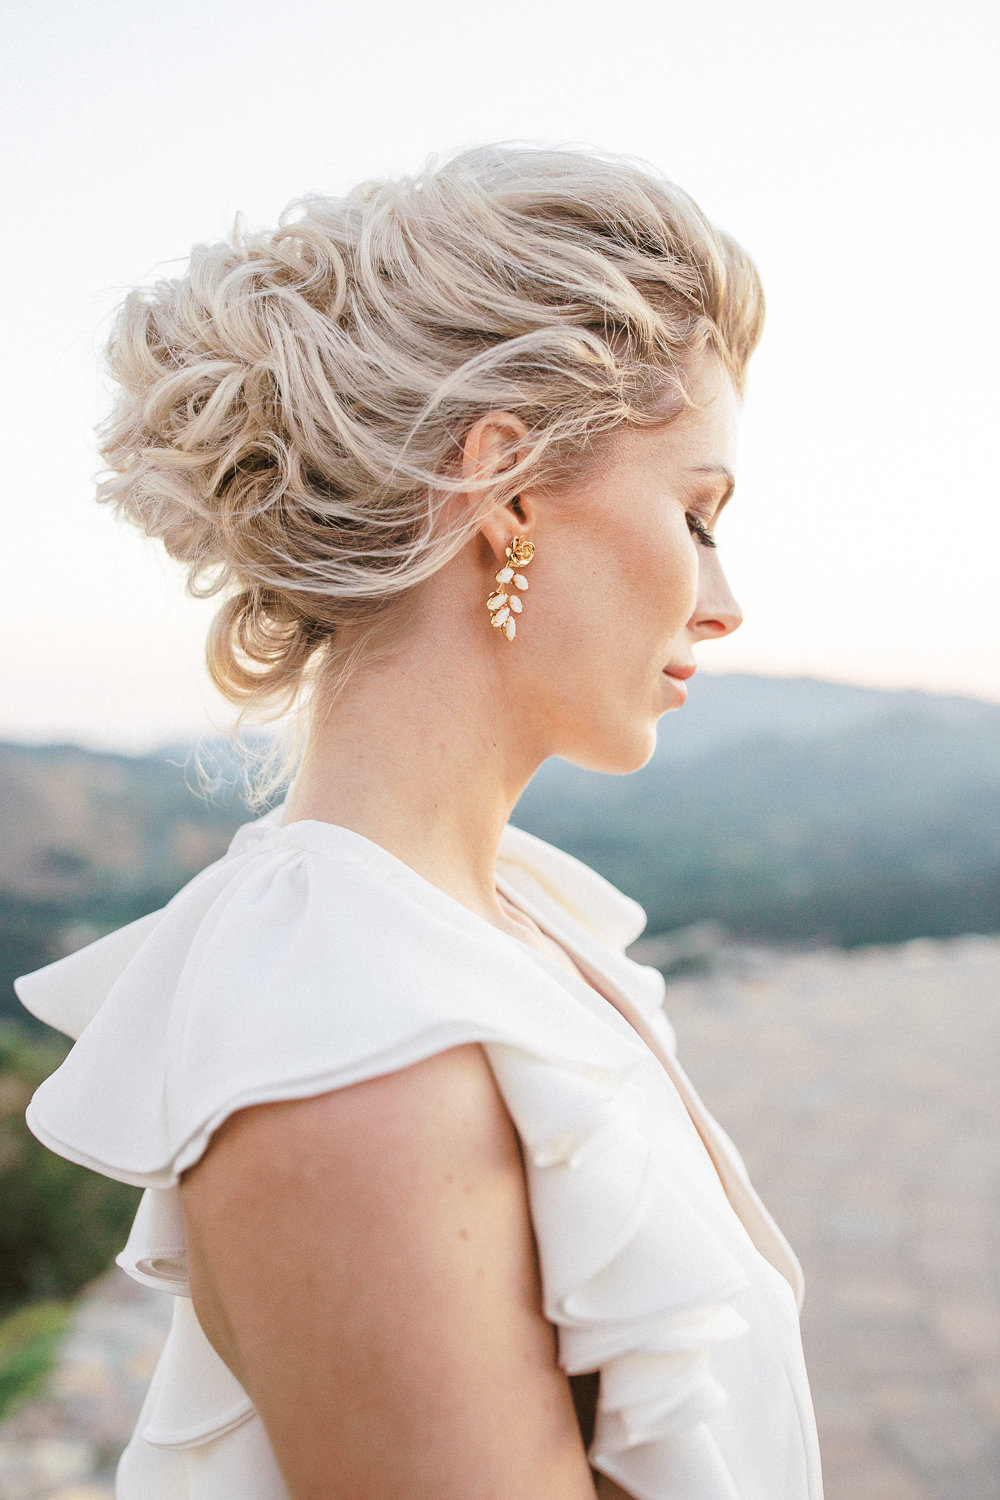 Babsie-Ly-Photography-Malibu-Rocky-Oaks-wedding-Alexandra-grecco-the-dress-theory-san-diego-012